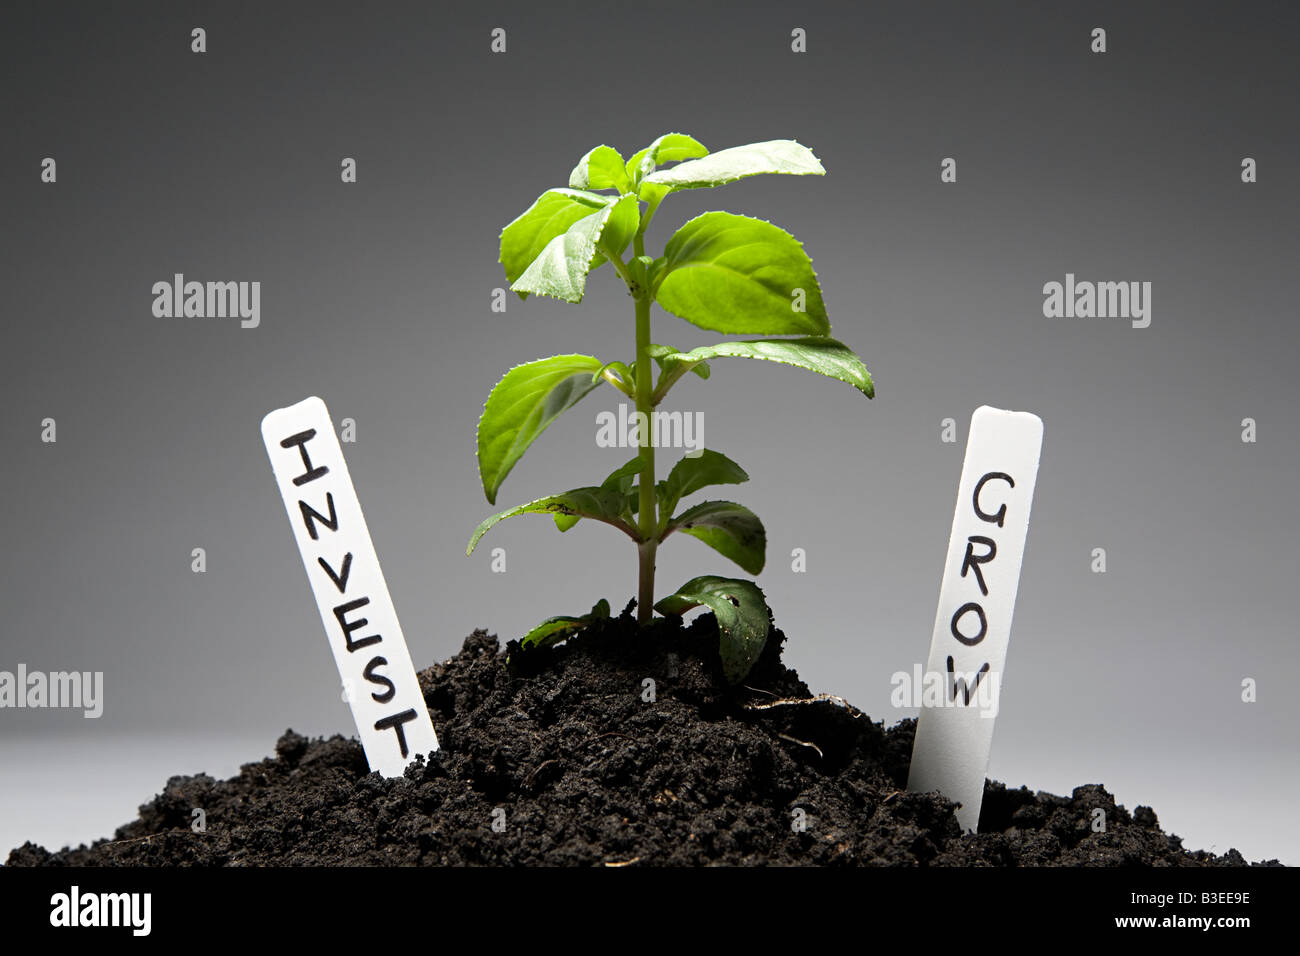 Sapling with investment labels - Stock Image